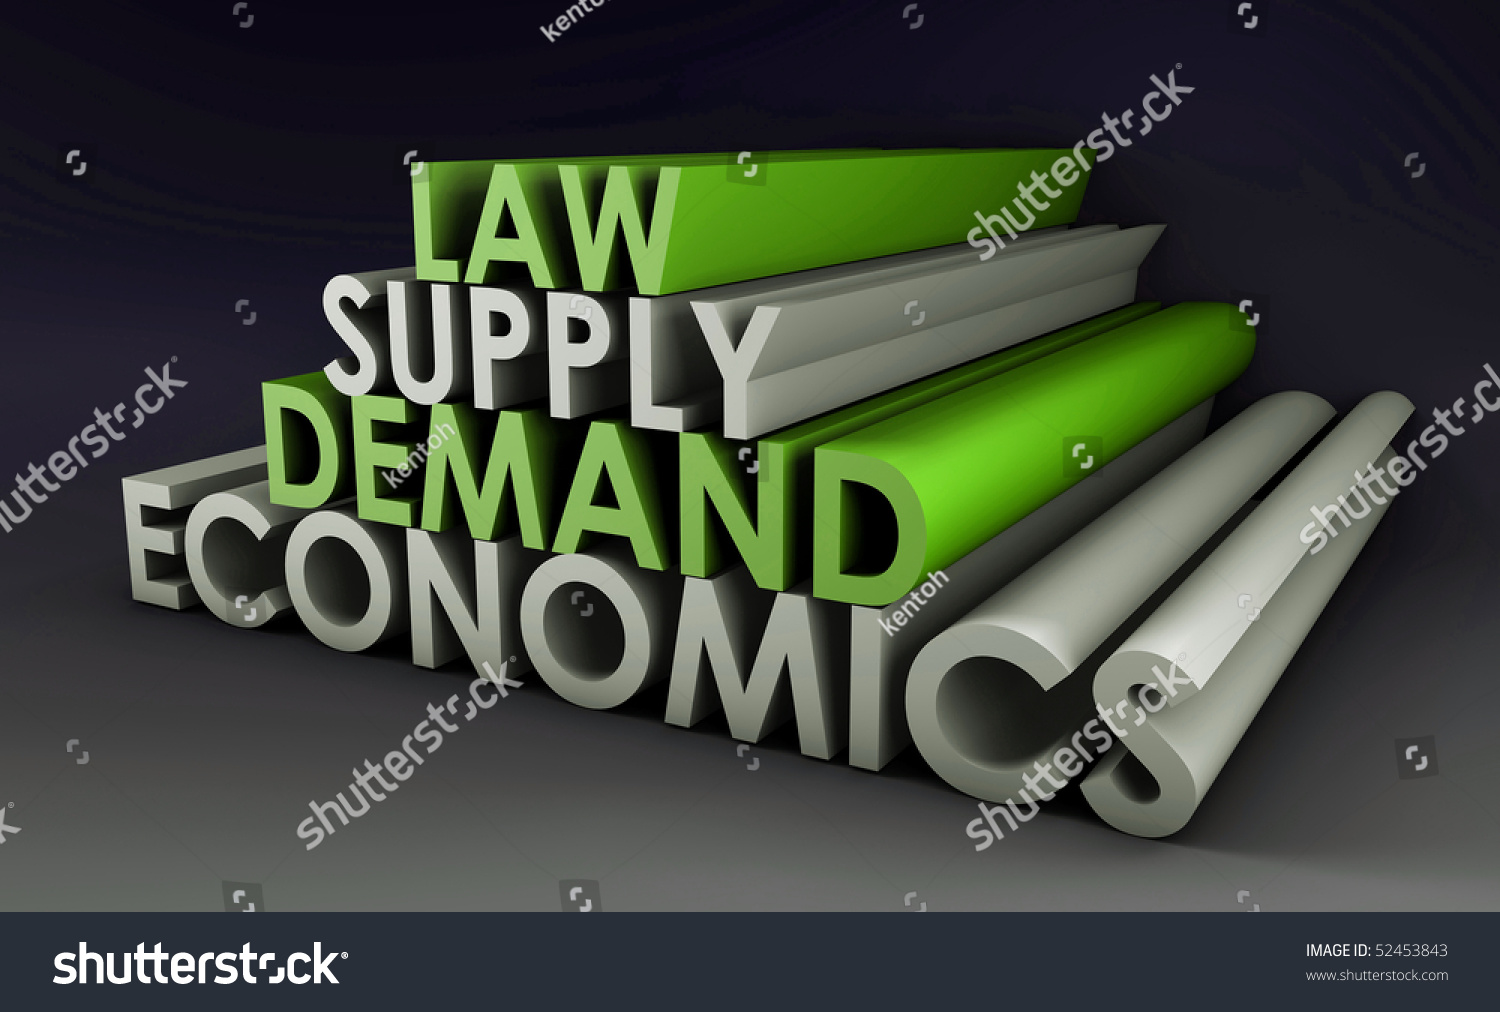 Economics Law Of Supply And Demand Background Stock Photo